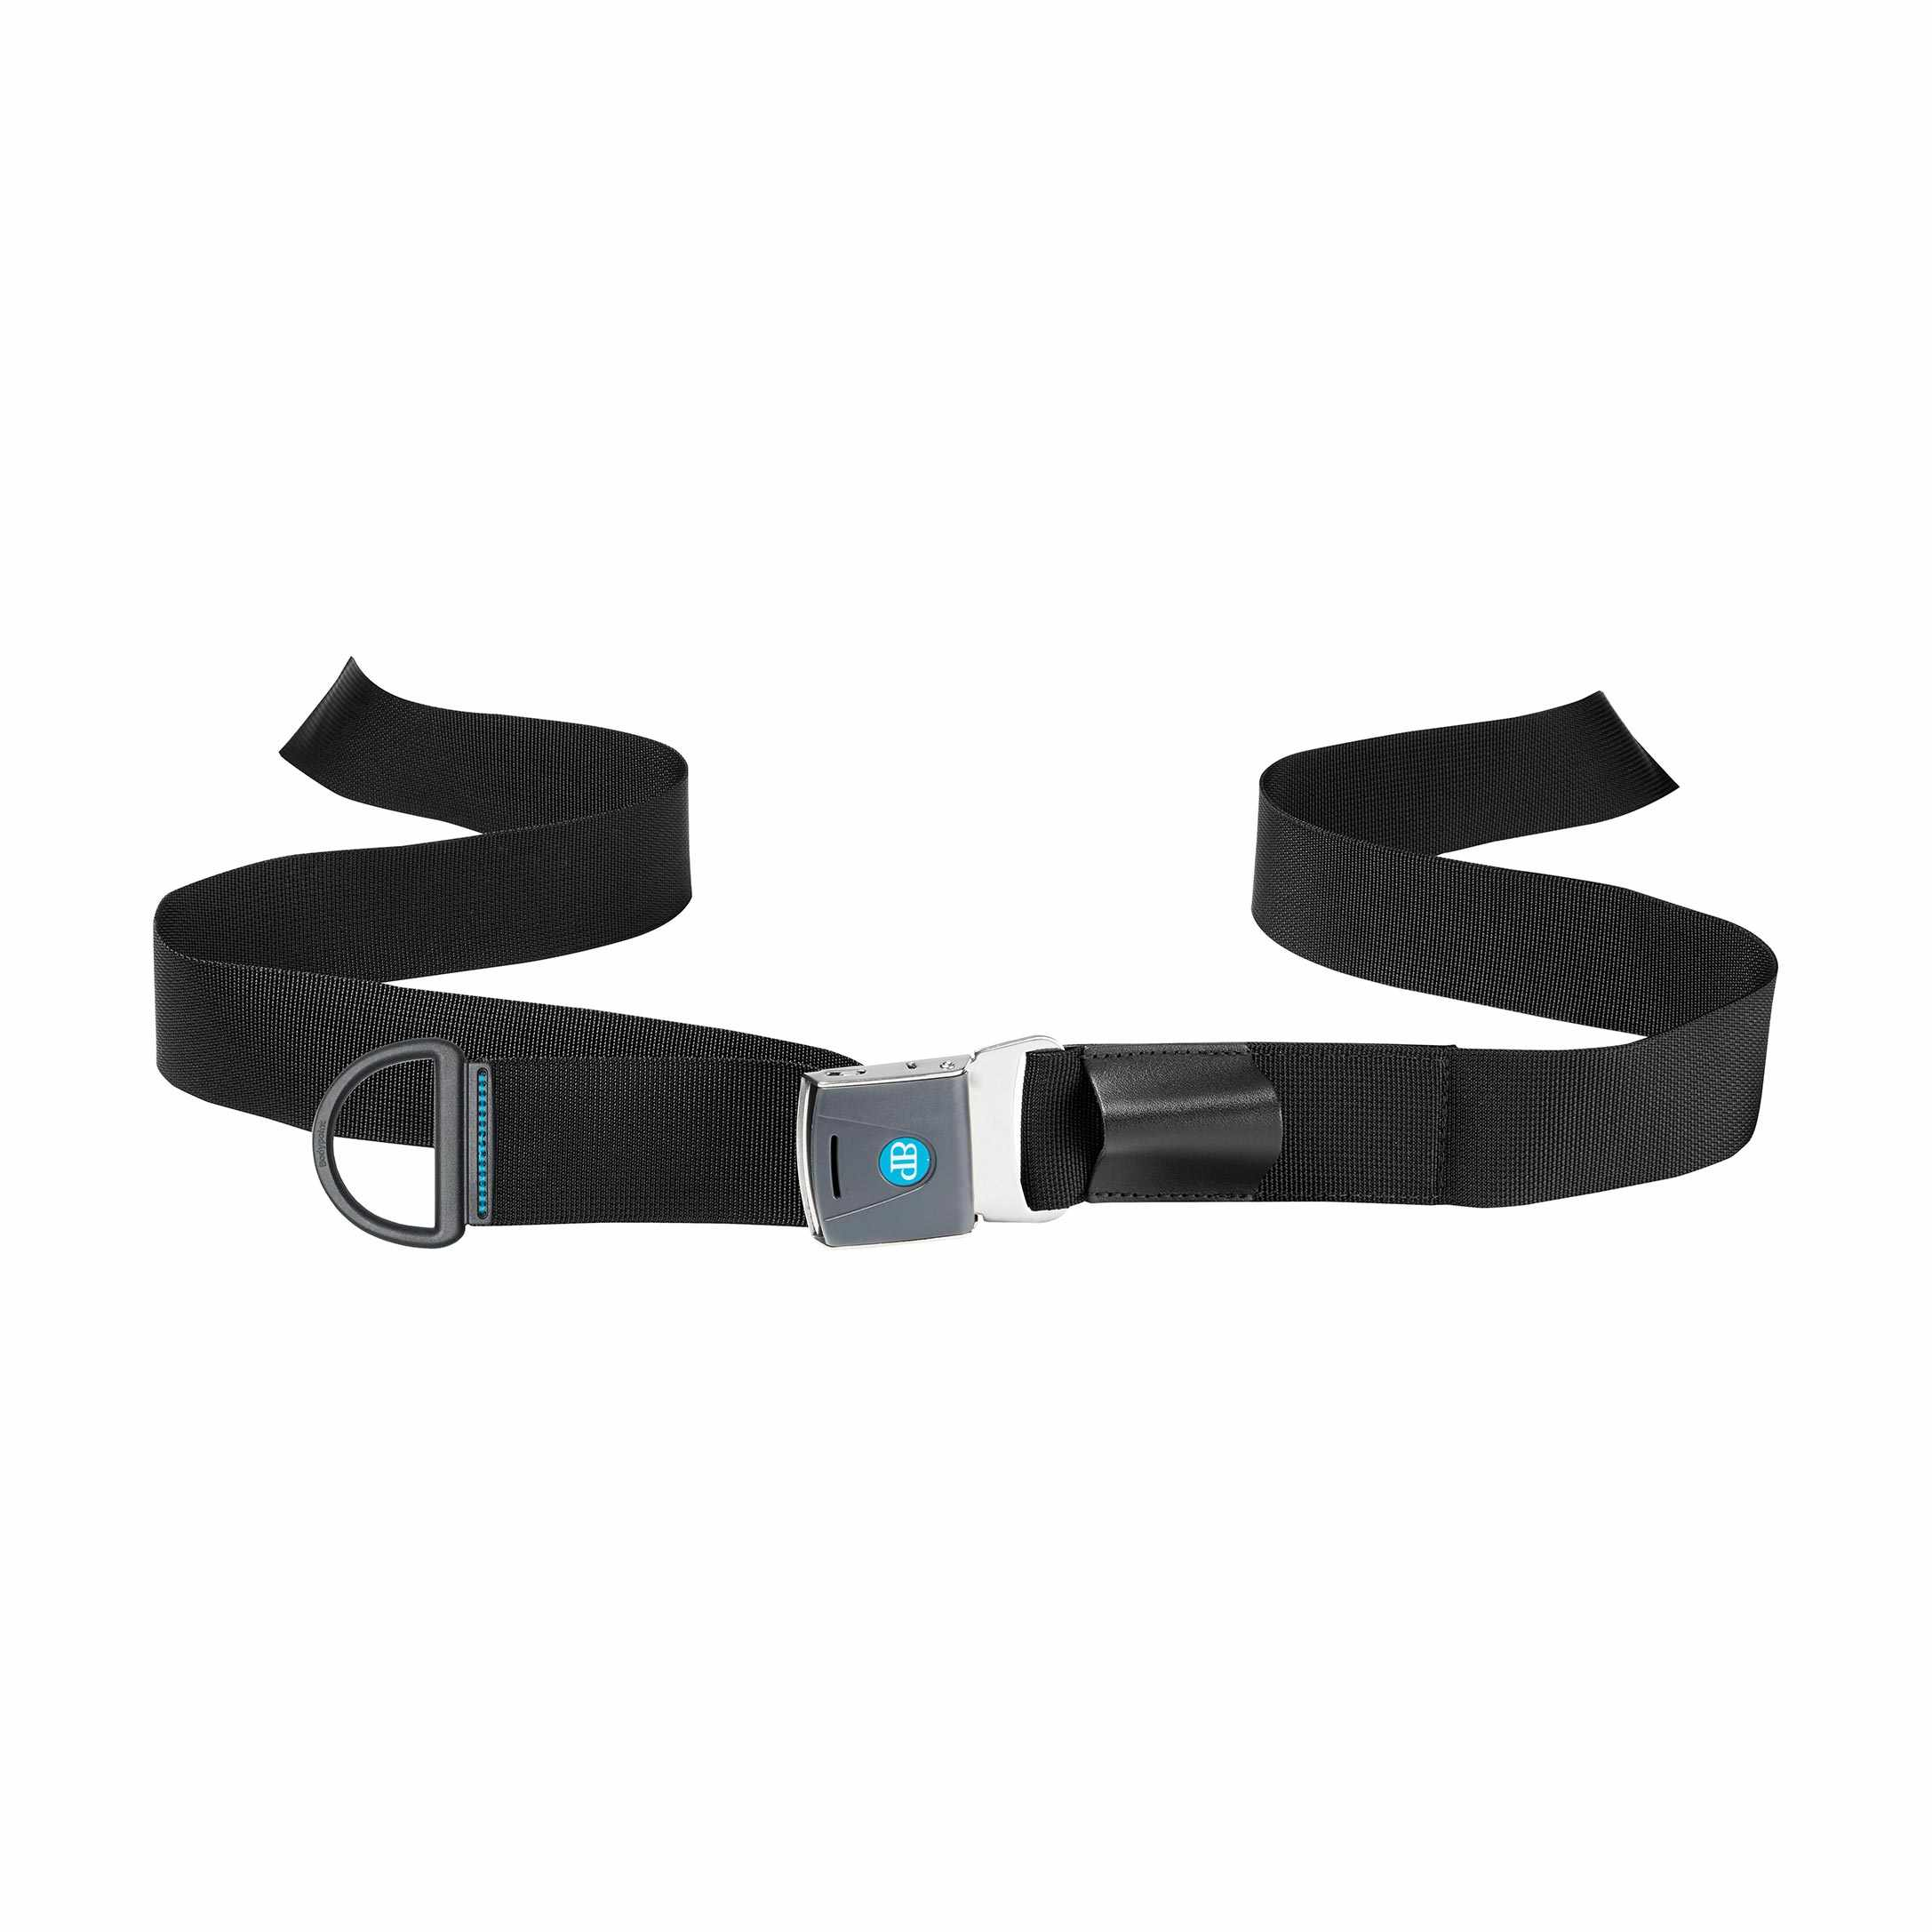 Bodypoint center-pull two point non-padded quad belt with rehab latch buckle - large